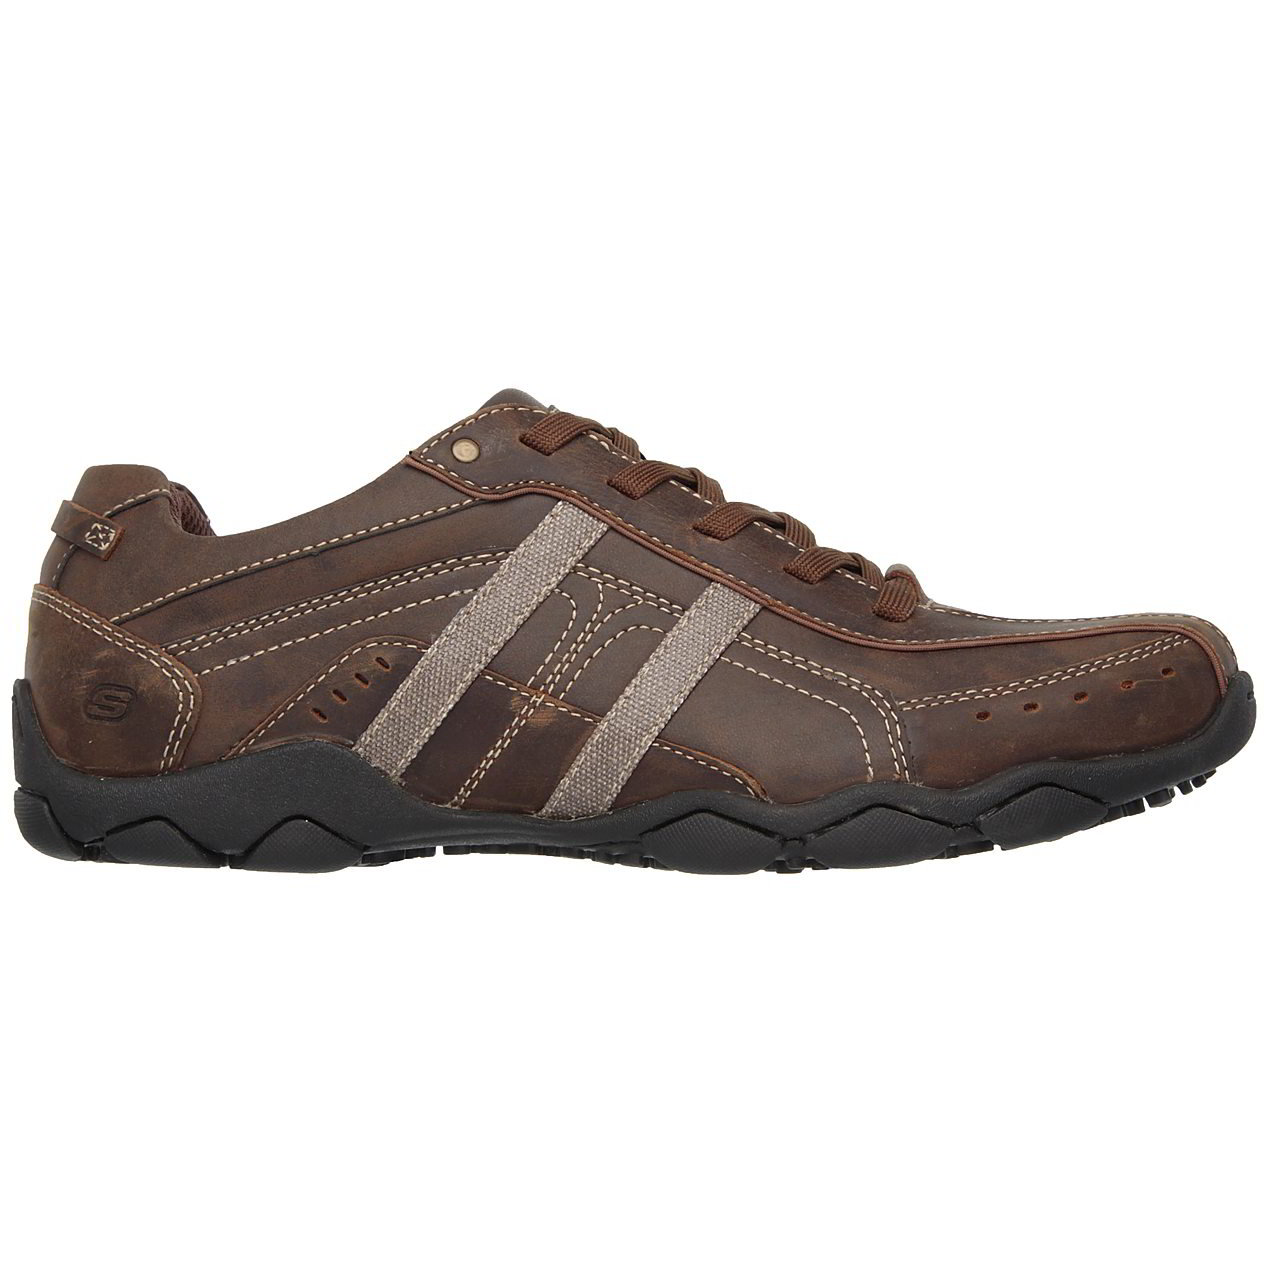 Skechers Mens Diameter Murilo Leather Lace Up Shoes - Dark Brown